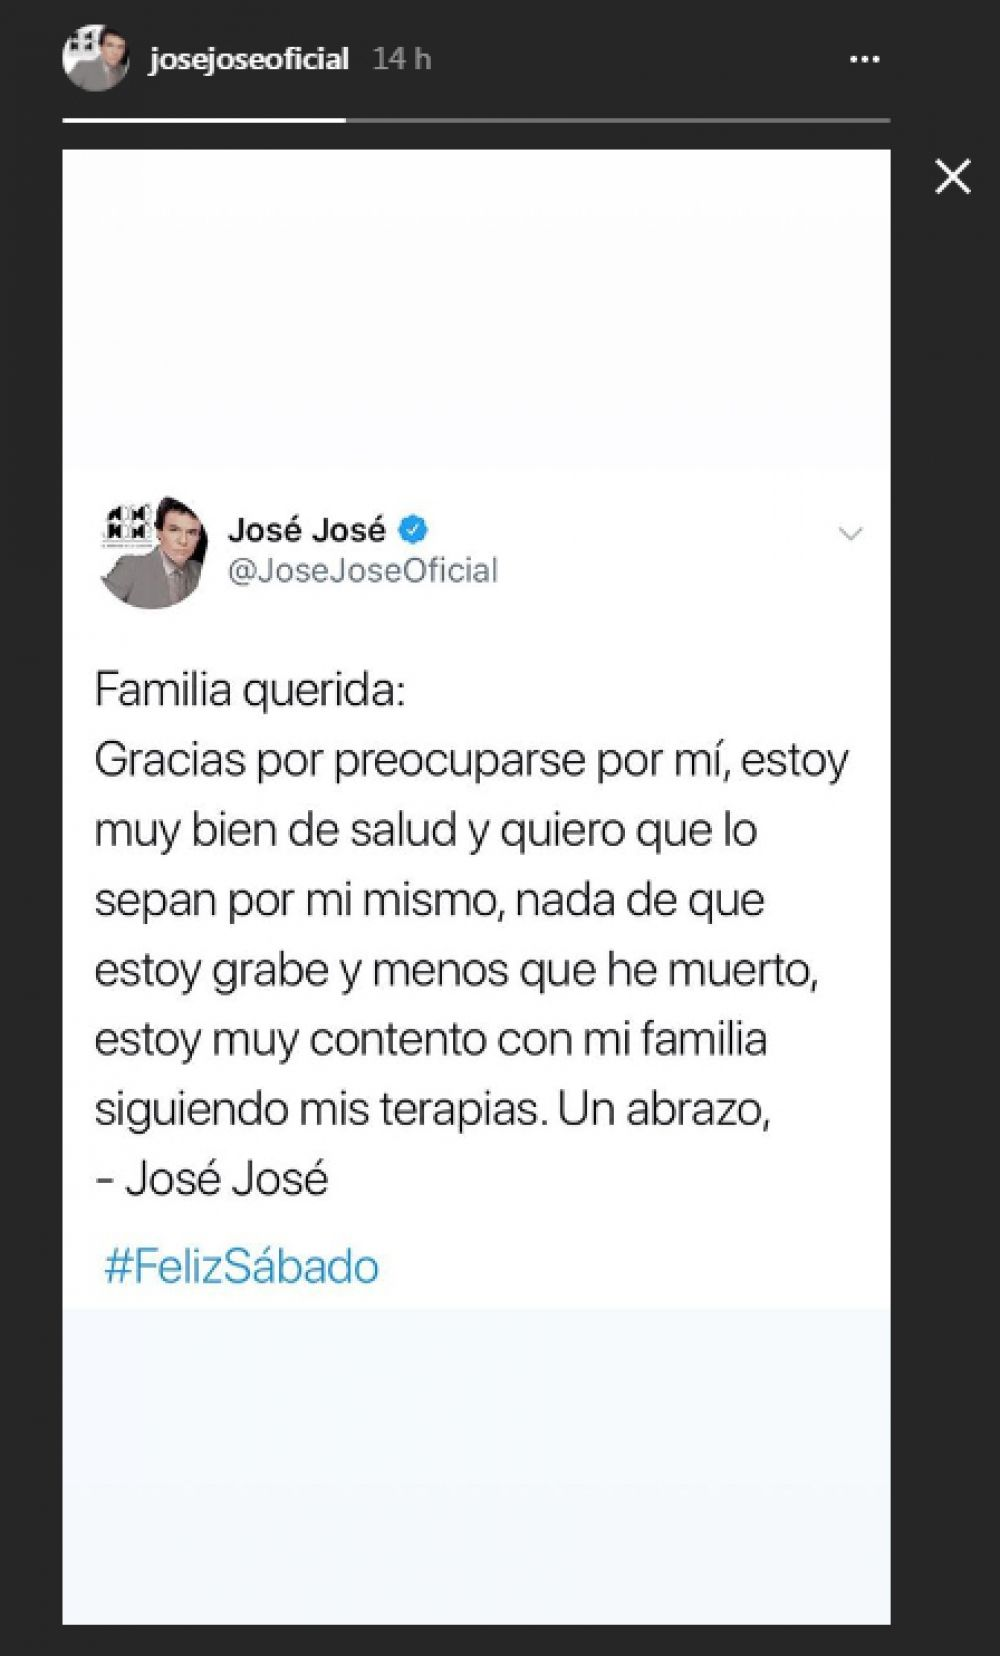 Mensaje de José José en Instagram Stories